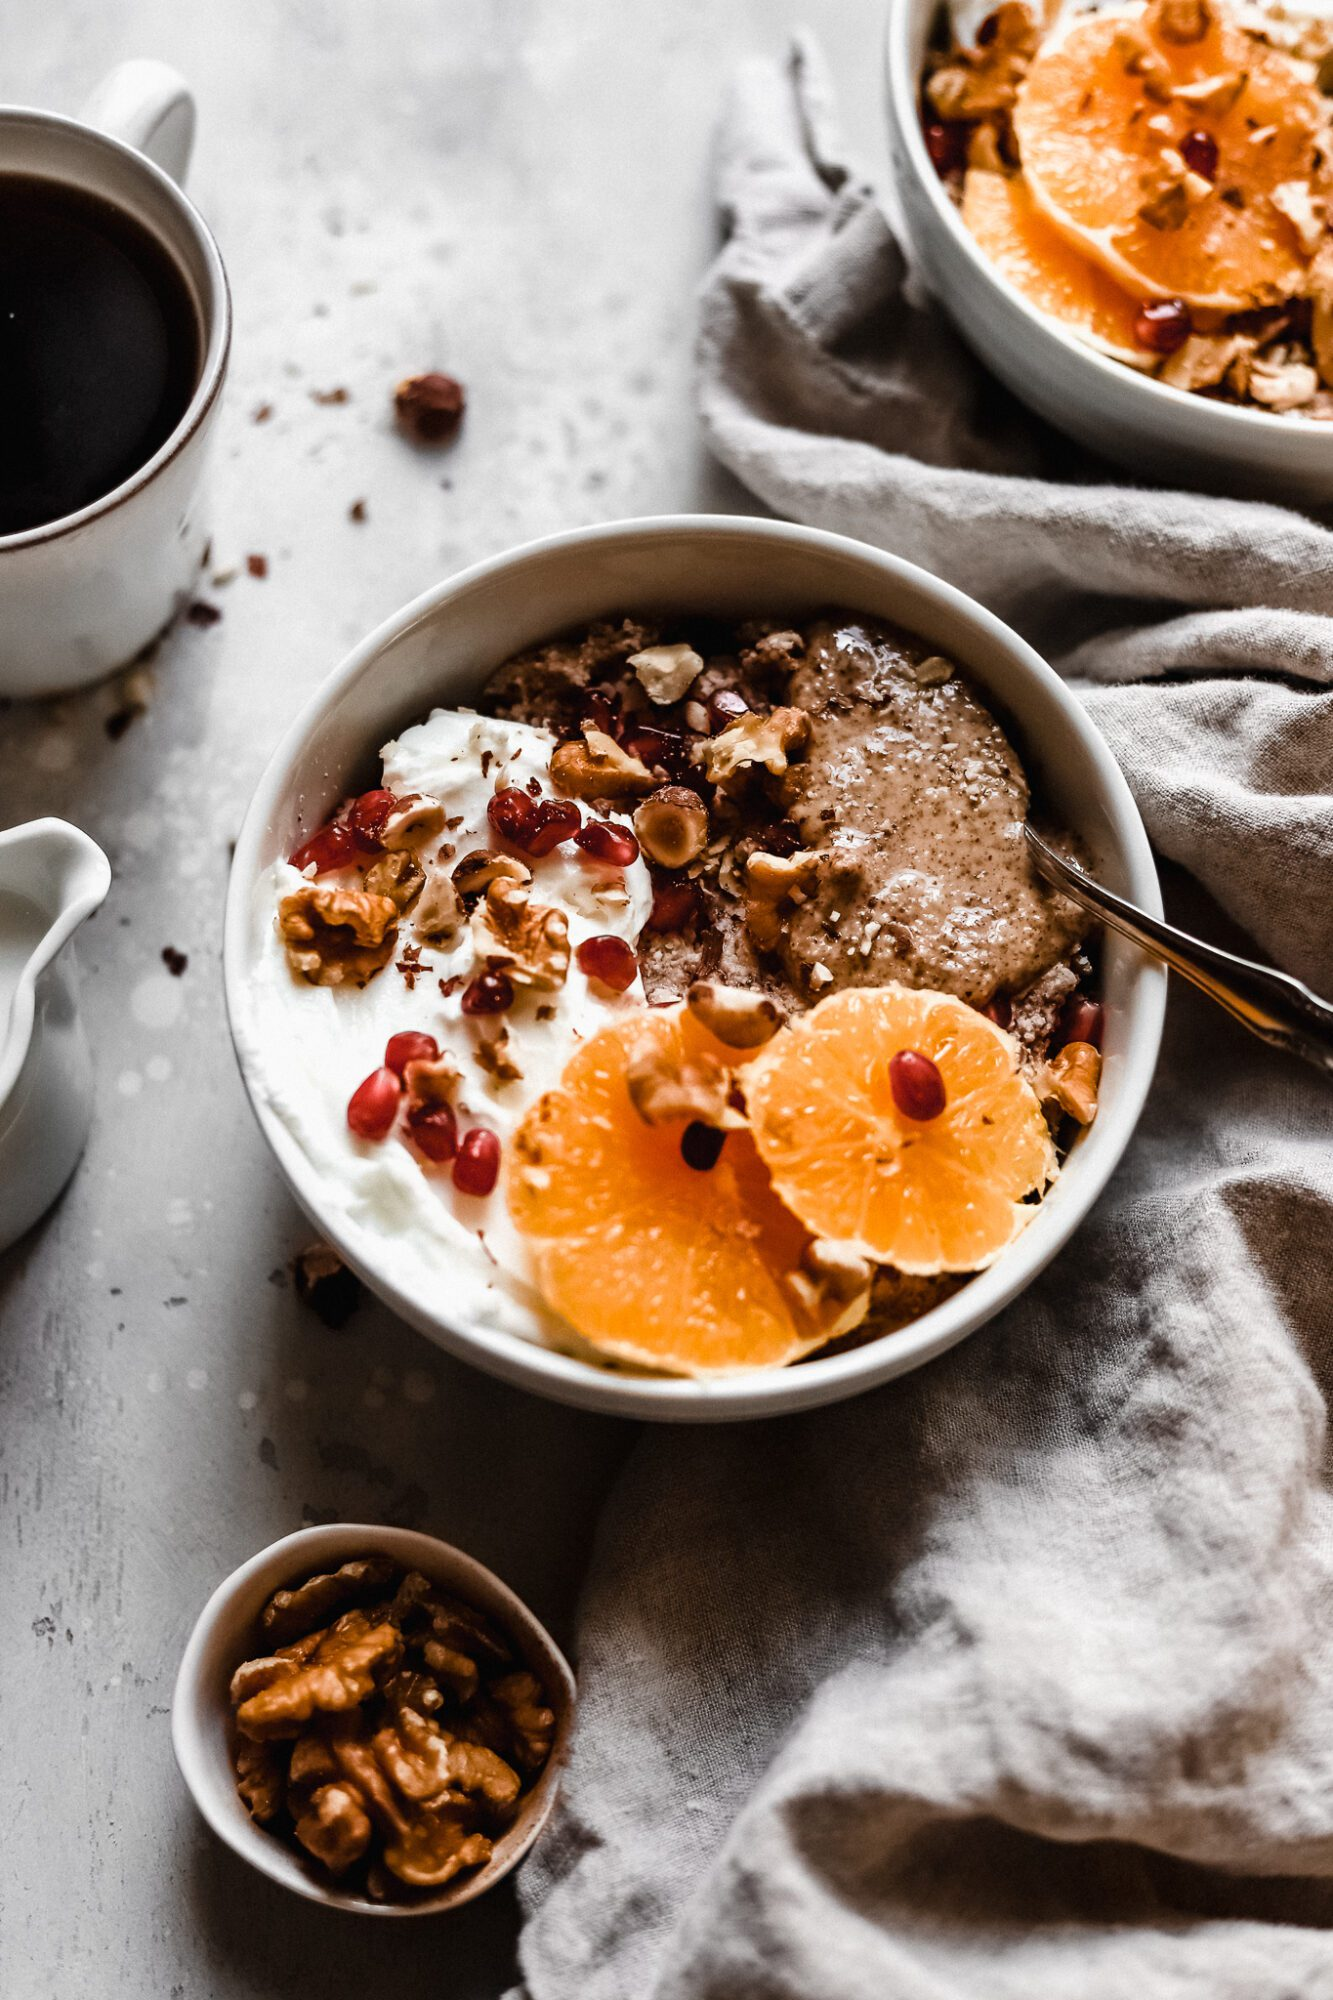 vegan Whole30 breakfast bowl with orange slices and walnuts